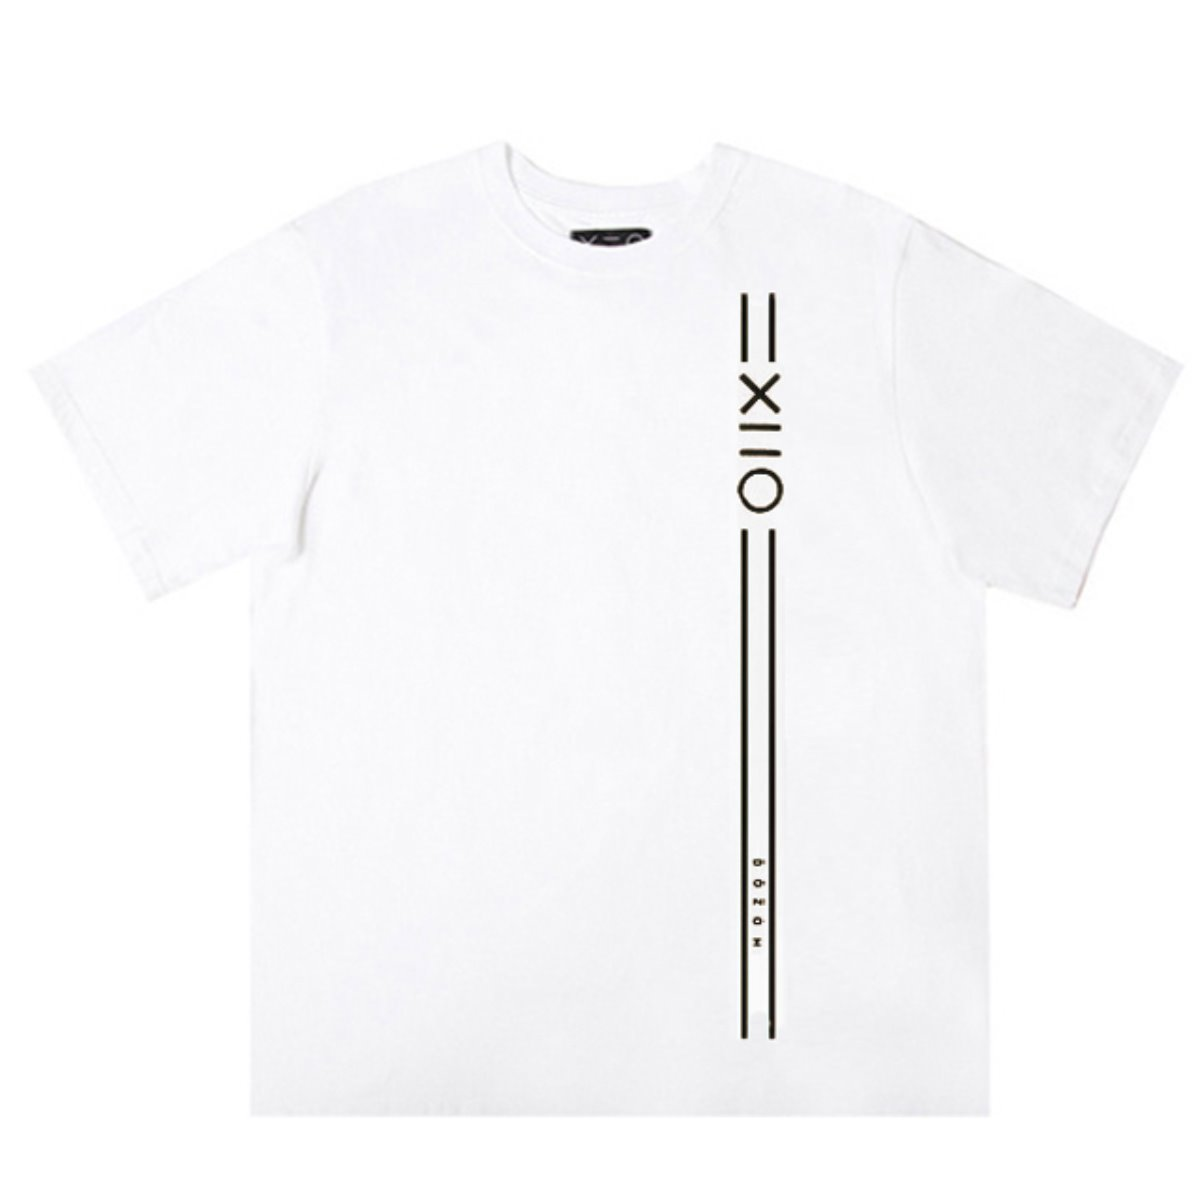 WHITE DOZOH BLACK EQUAL V LINE&LOGO T-SHIRTS